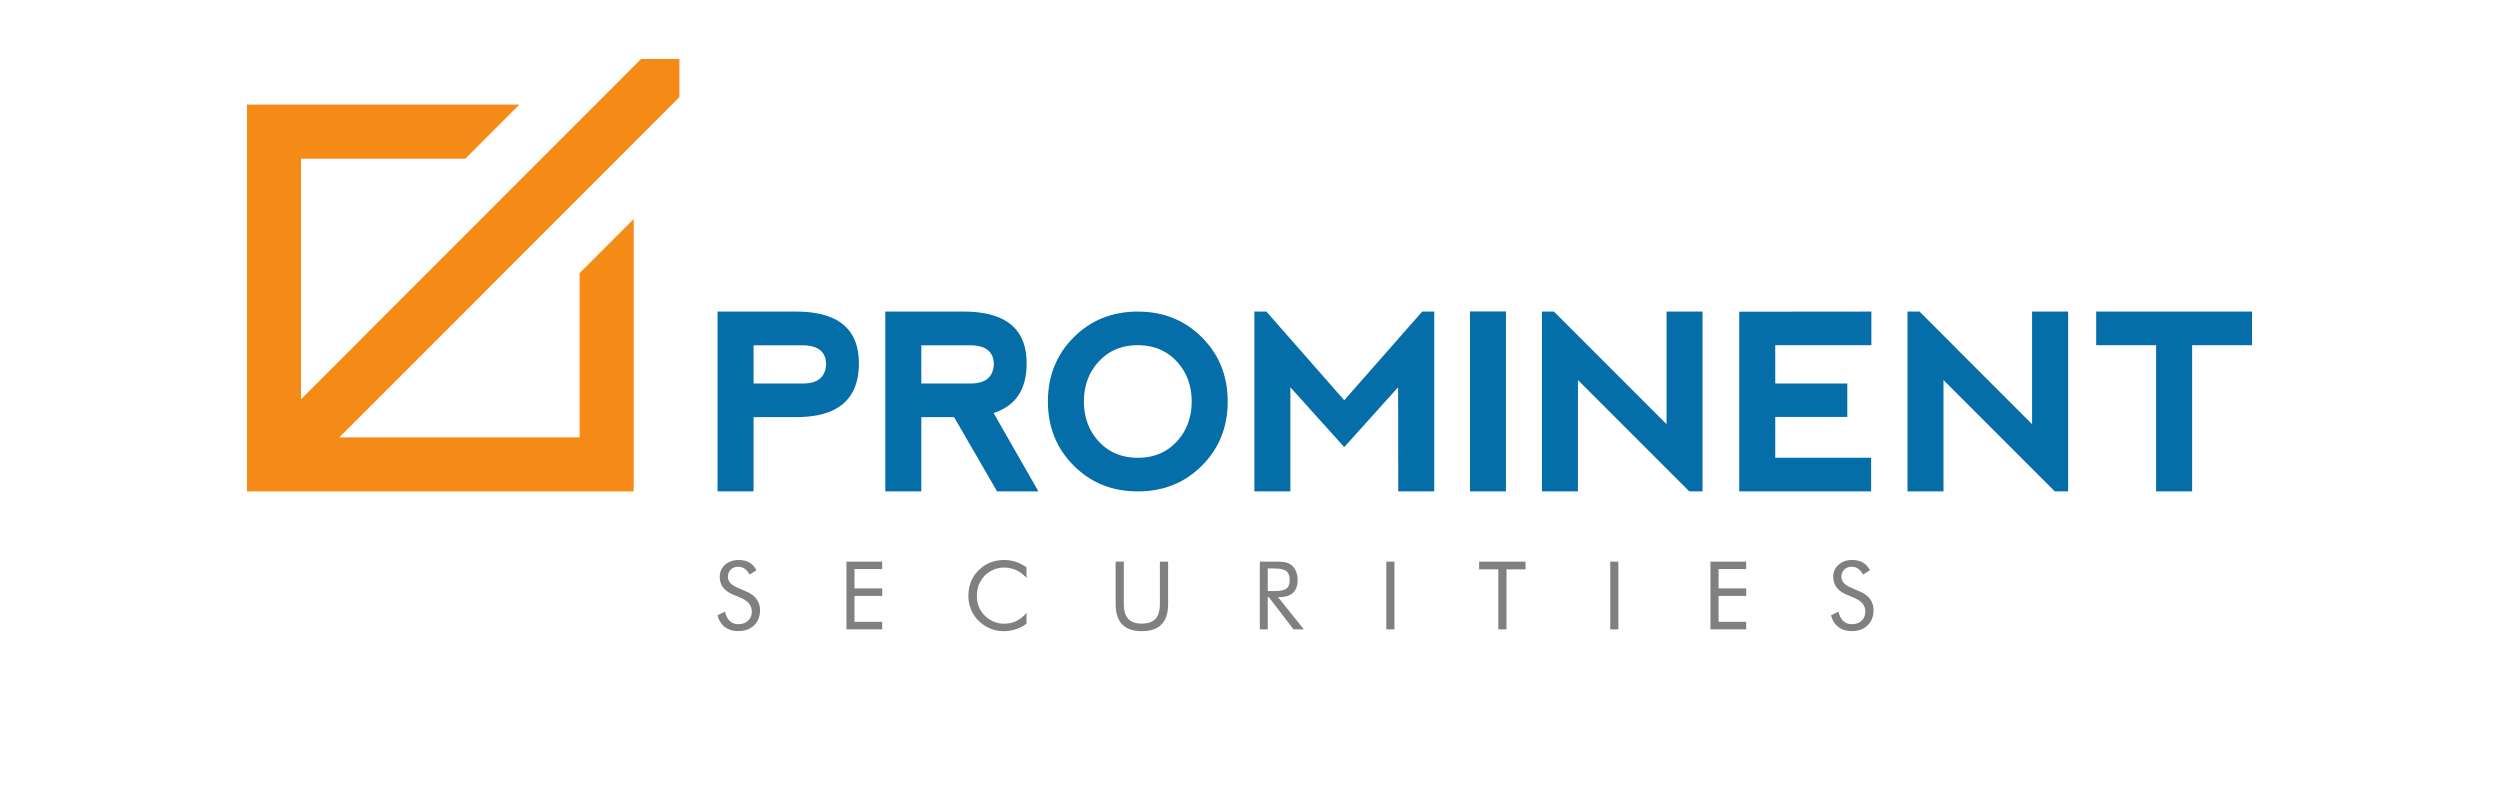 Prominent Securities Limited